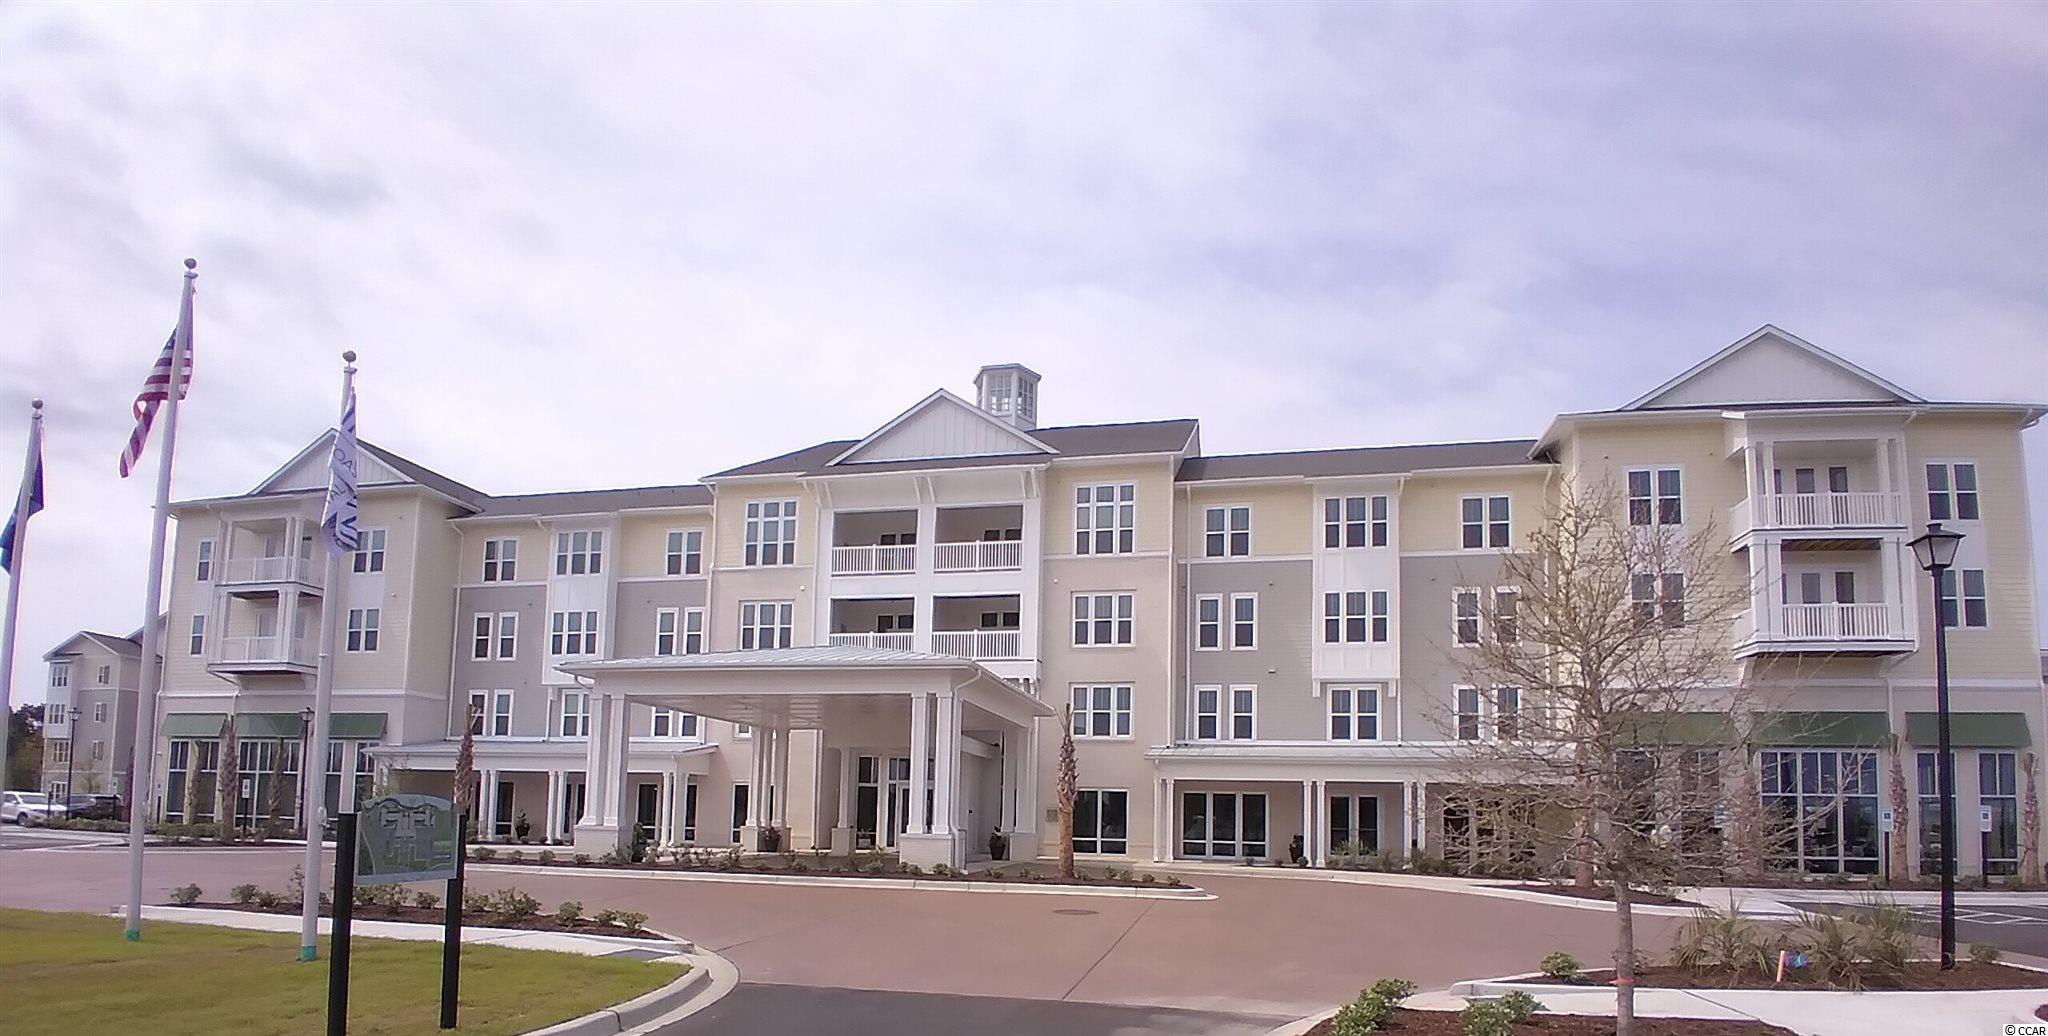 It's the time of your life... why not enjoy all its privileges? Introducing Inspire at Coastal Grand, an extraordinary senior apartment community in Myrtle Beach designed for you.  Our 55+ apartment rental community located in beautiful seaside South Carolina offers one, two, or three bedroom apartment homes. Relax in luxury with chef-inspired kitchens enhanced by granite countertops, vinyl wood flooring, stainless steel sinks and appliances, oversized closets, and spacious balconies. Inspiration is just outside your door with our senior community living features including a resort pool and outdoor courtyards, exclusive athletic club, yard games, walking trail, creative arts center, concierge services, and more.  Up to 2 pets are allowed!  Inspire Coastal Grand is 55+ luxury senior living like you've never experienced before.  This two bedroom, two bath floor plan is 1155 sq. ft. and features a private balcony or patio.  There is a low application fee and a one time low Community Fee that is currently on special.  Call to learn more about this wonderful community or stop by for a personal tour.  We look forward to meeting you soon!  Minimum of 12 month lease is permitted.